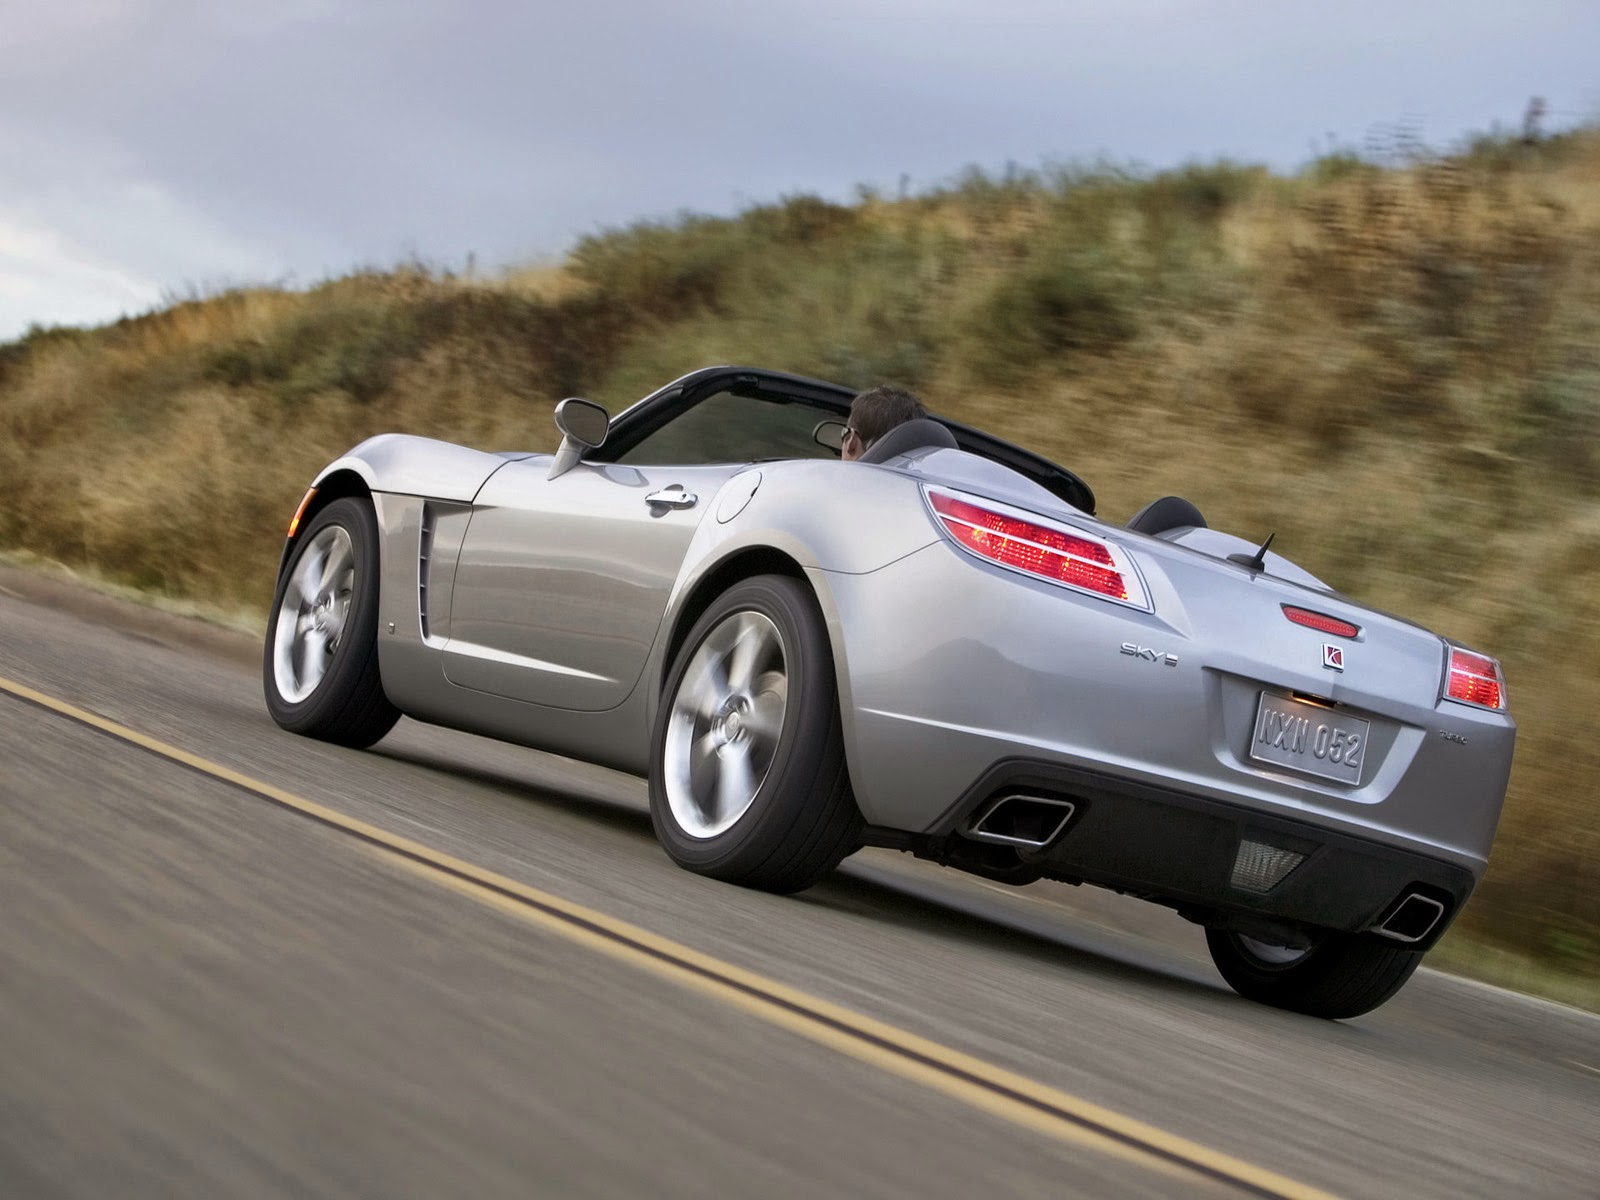 daily turismo look to the sky on the solstice 2006 2010 pontiac solstice saturn sky market. Black Bedroom Furniture Sets. Home Design Ideas